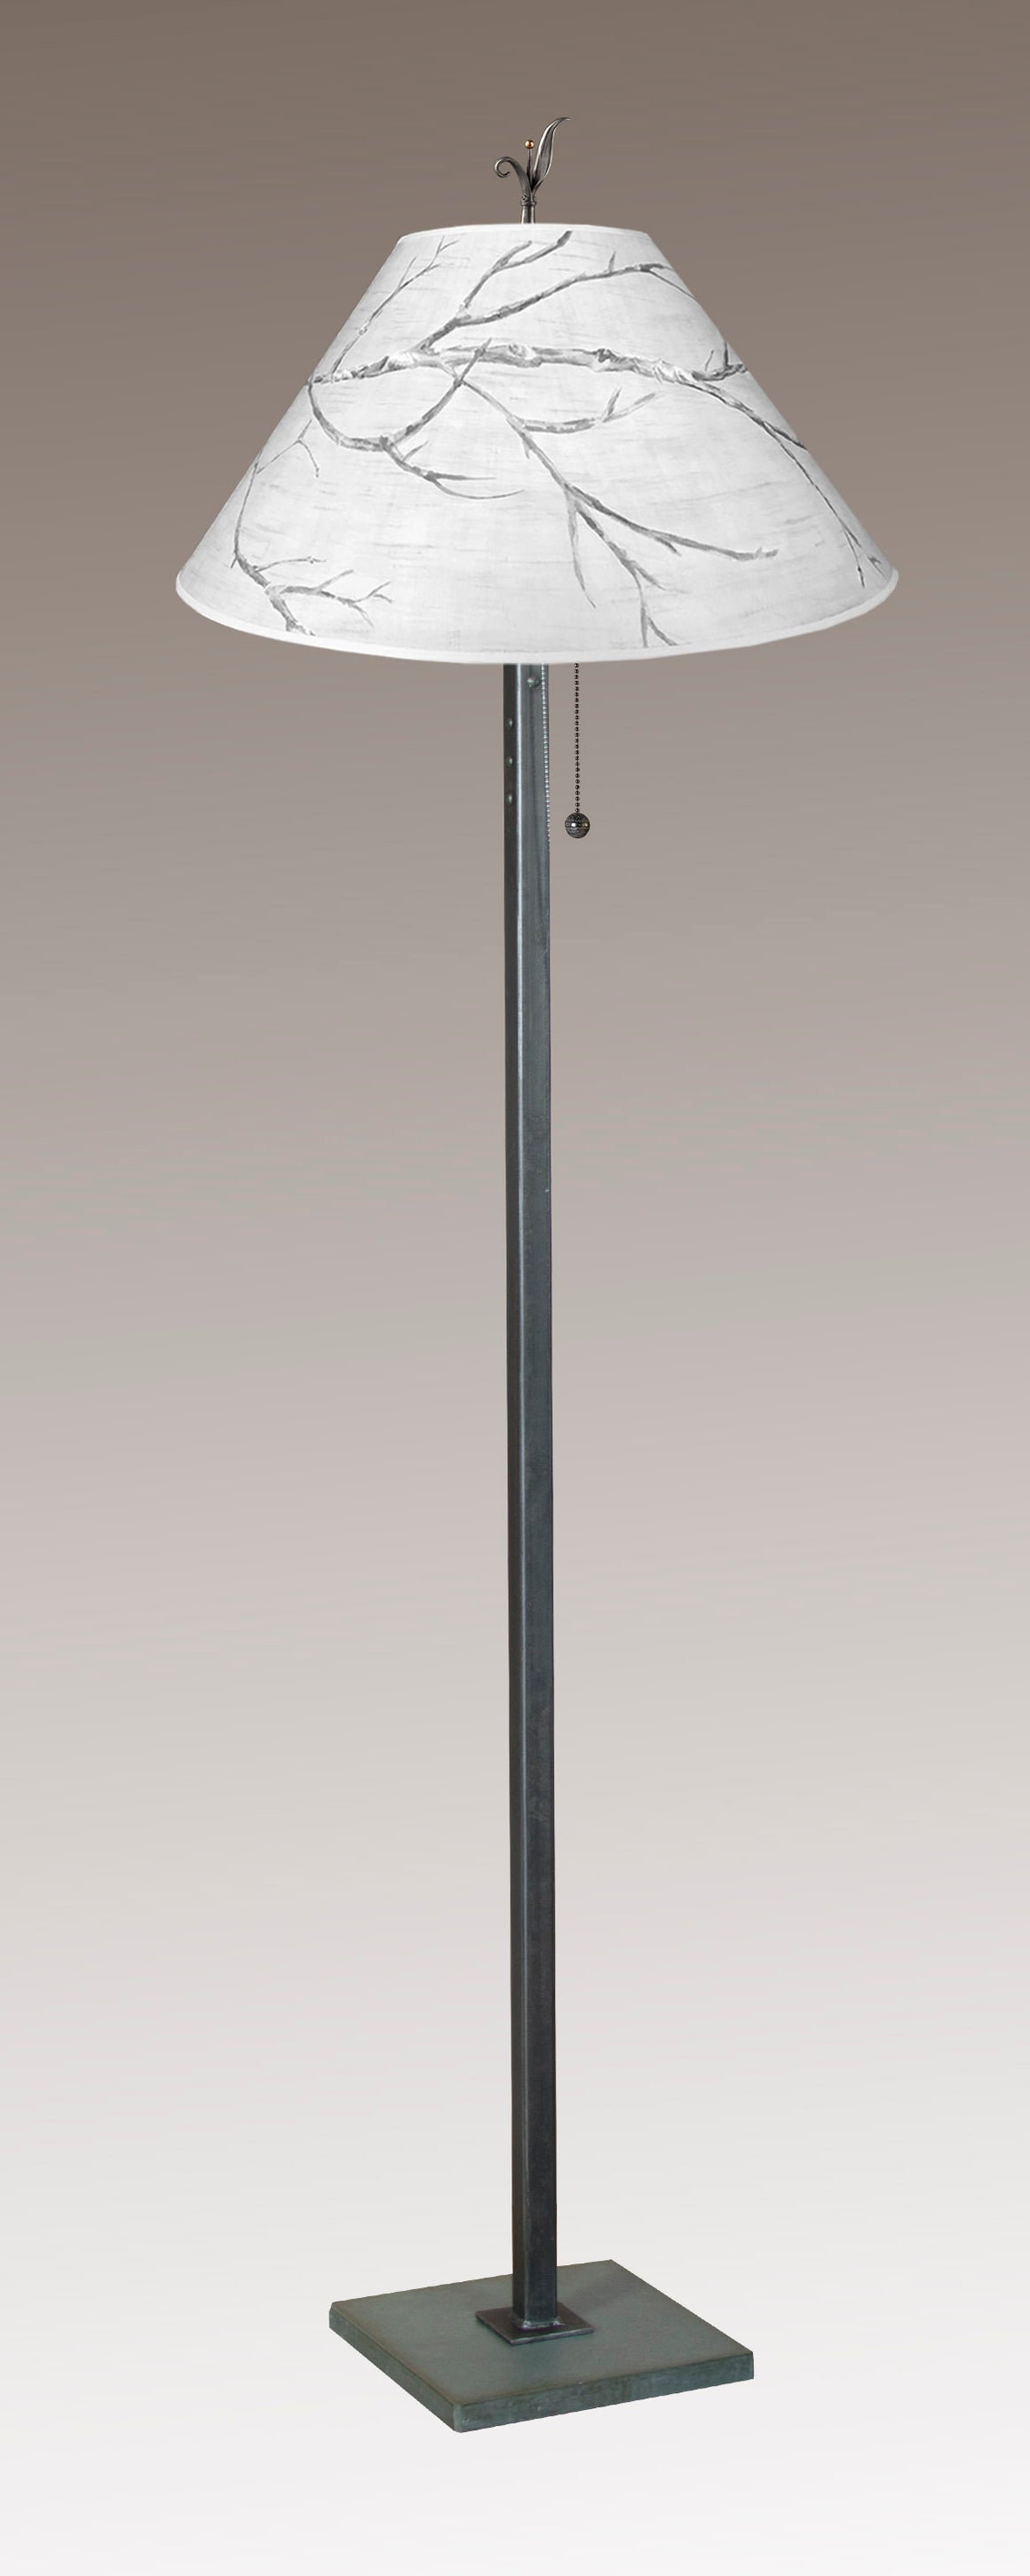 Steel Floor Lamp on Italian Marble with Large Conical Shade in Sweeping Branch